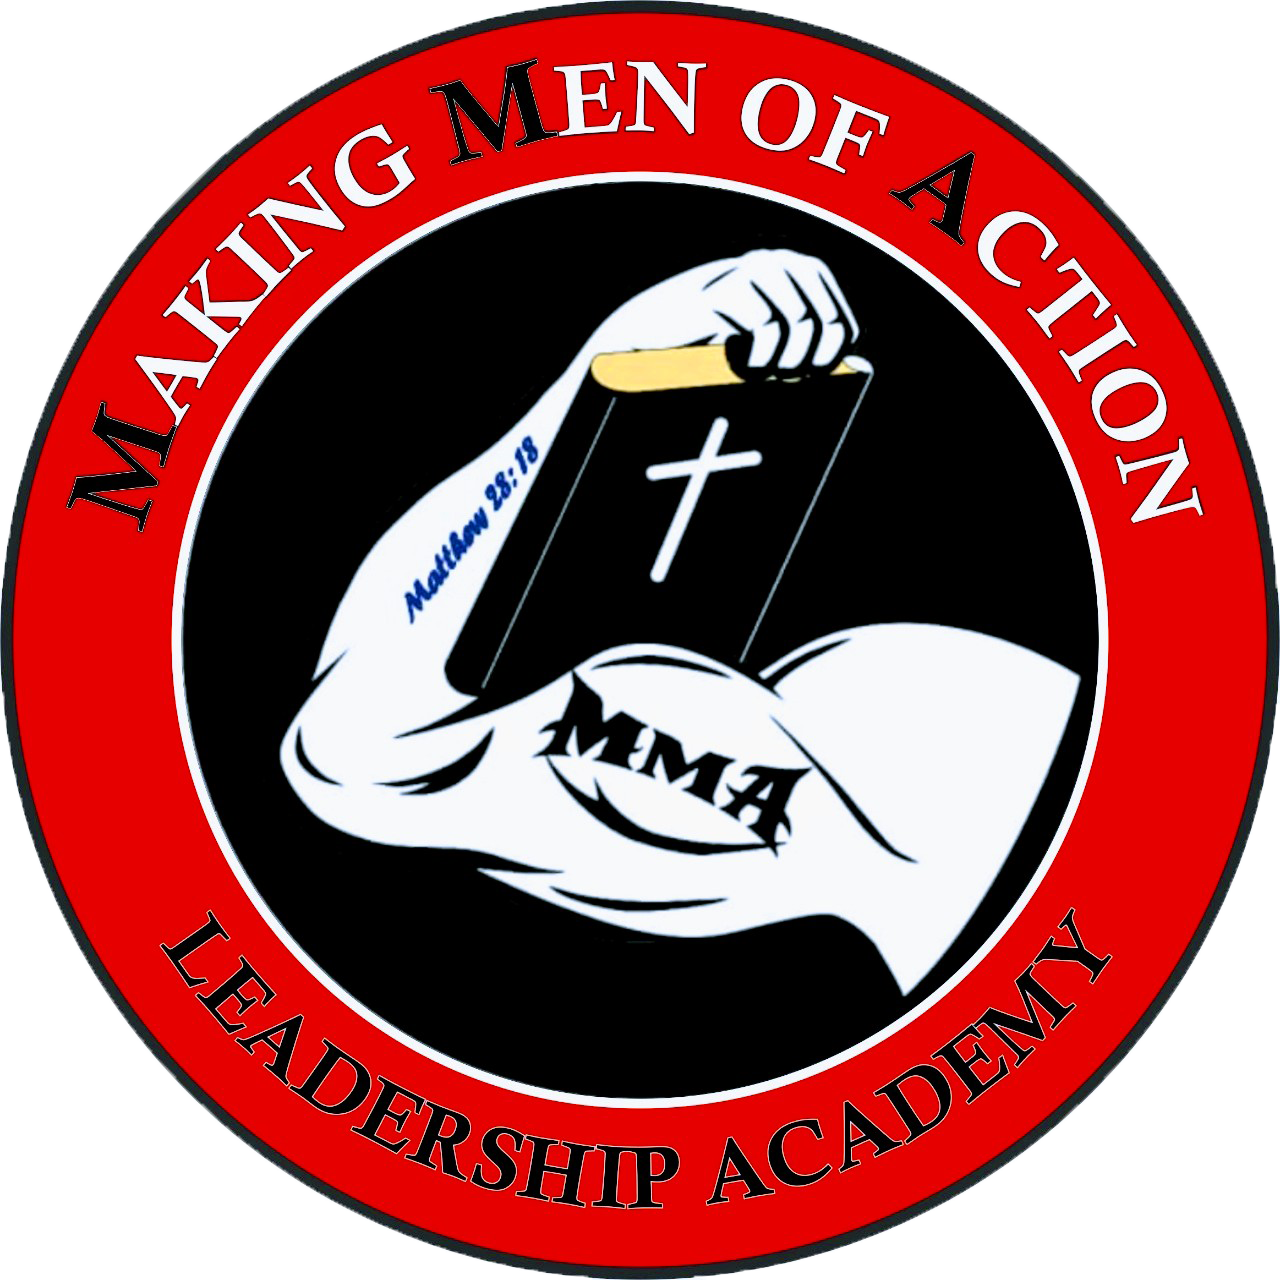 Chart Logo With A Arrow: Making Men Of Action